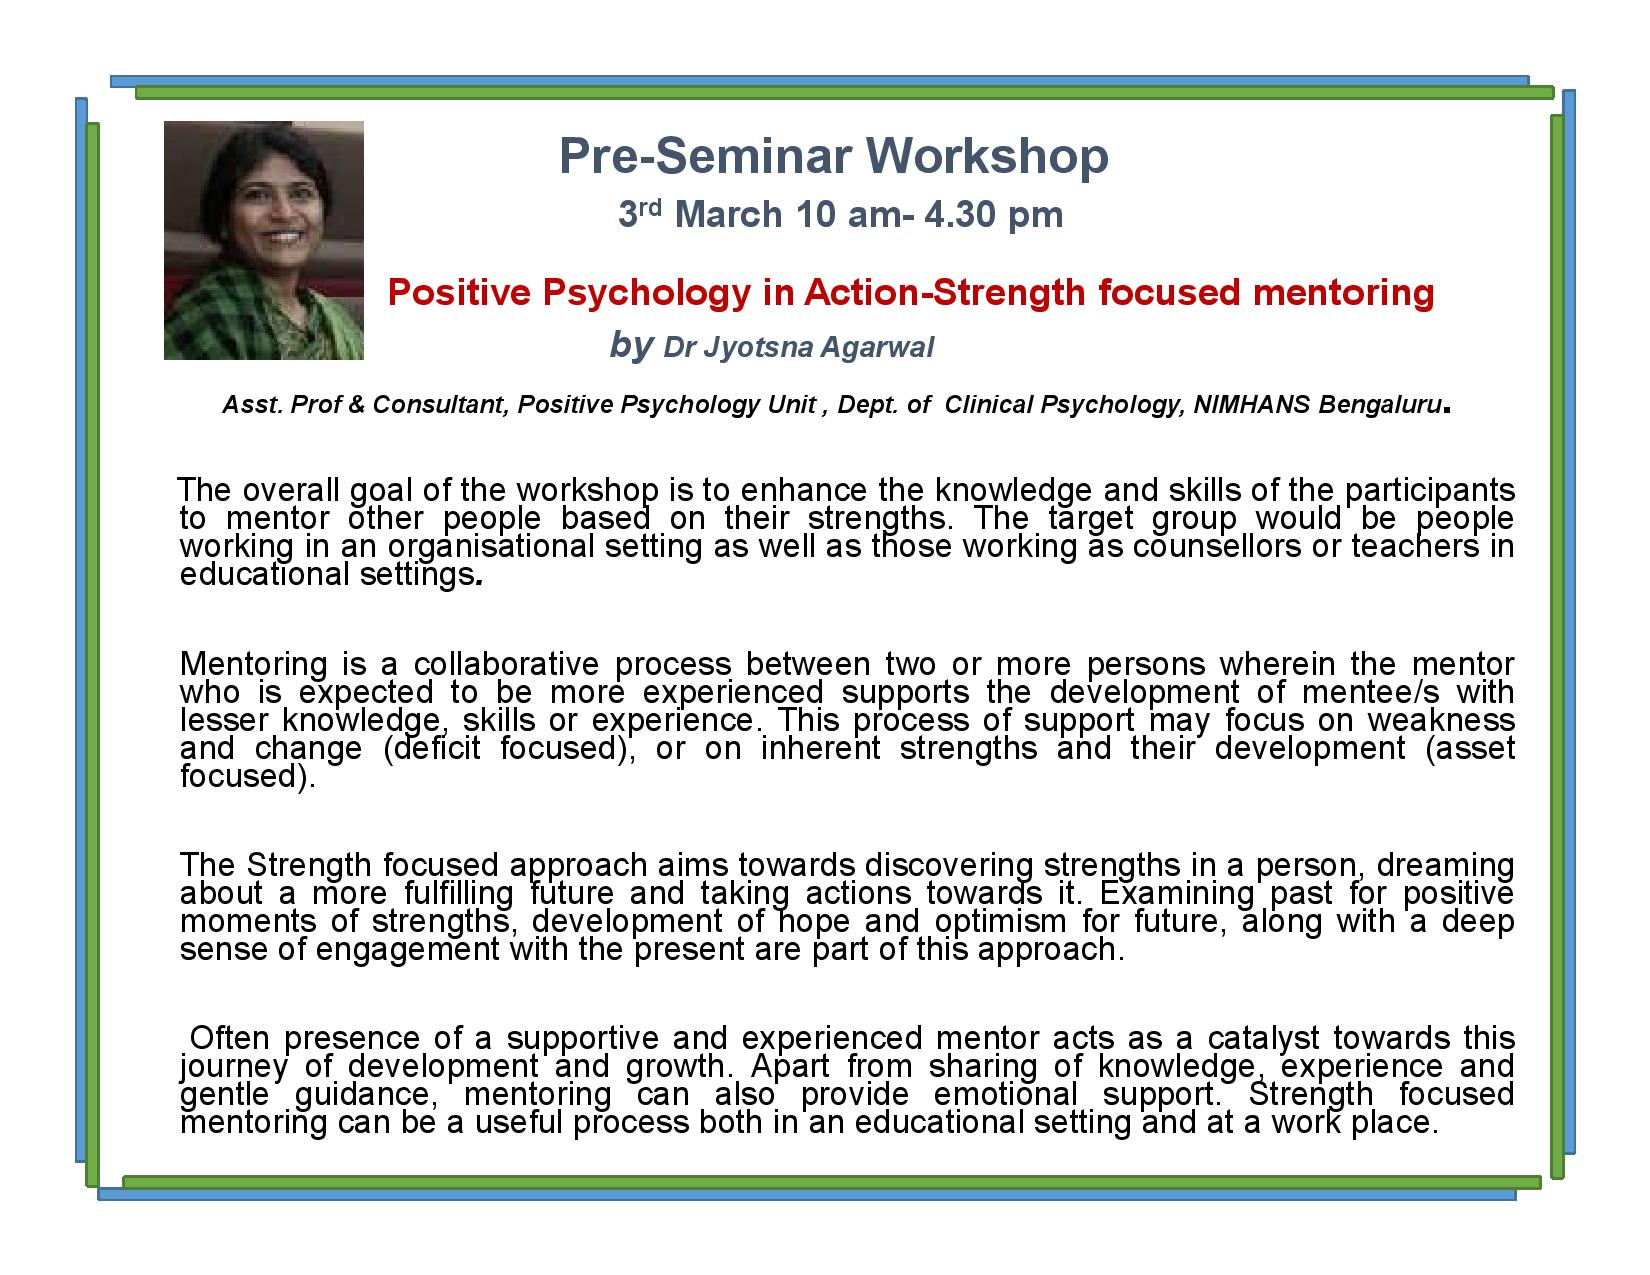 strength based mentoring workshop ms university baroda youth 6e brochure national seminar on positive psychology page 003